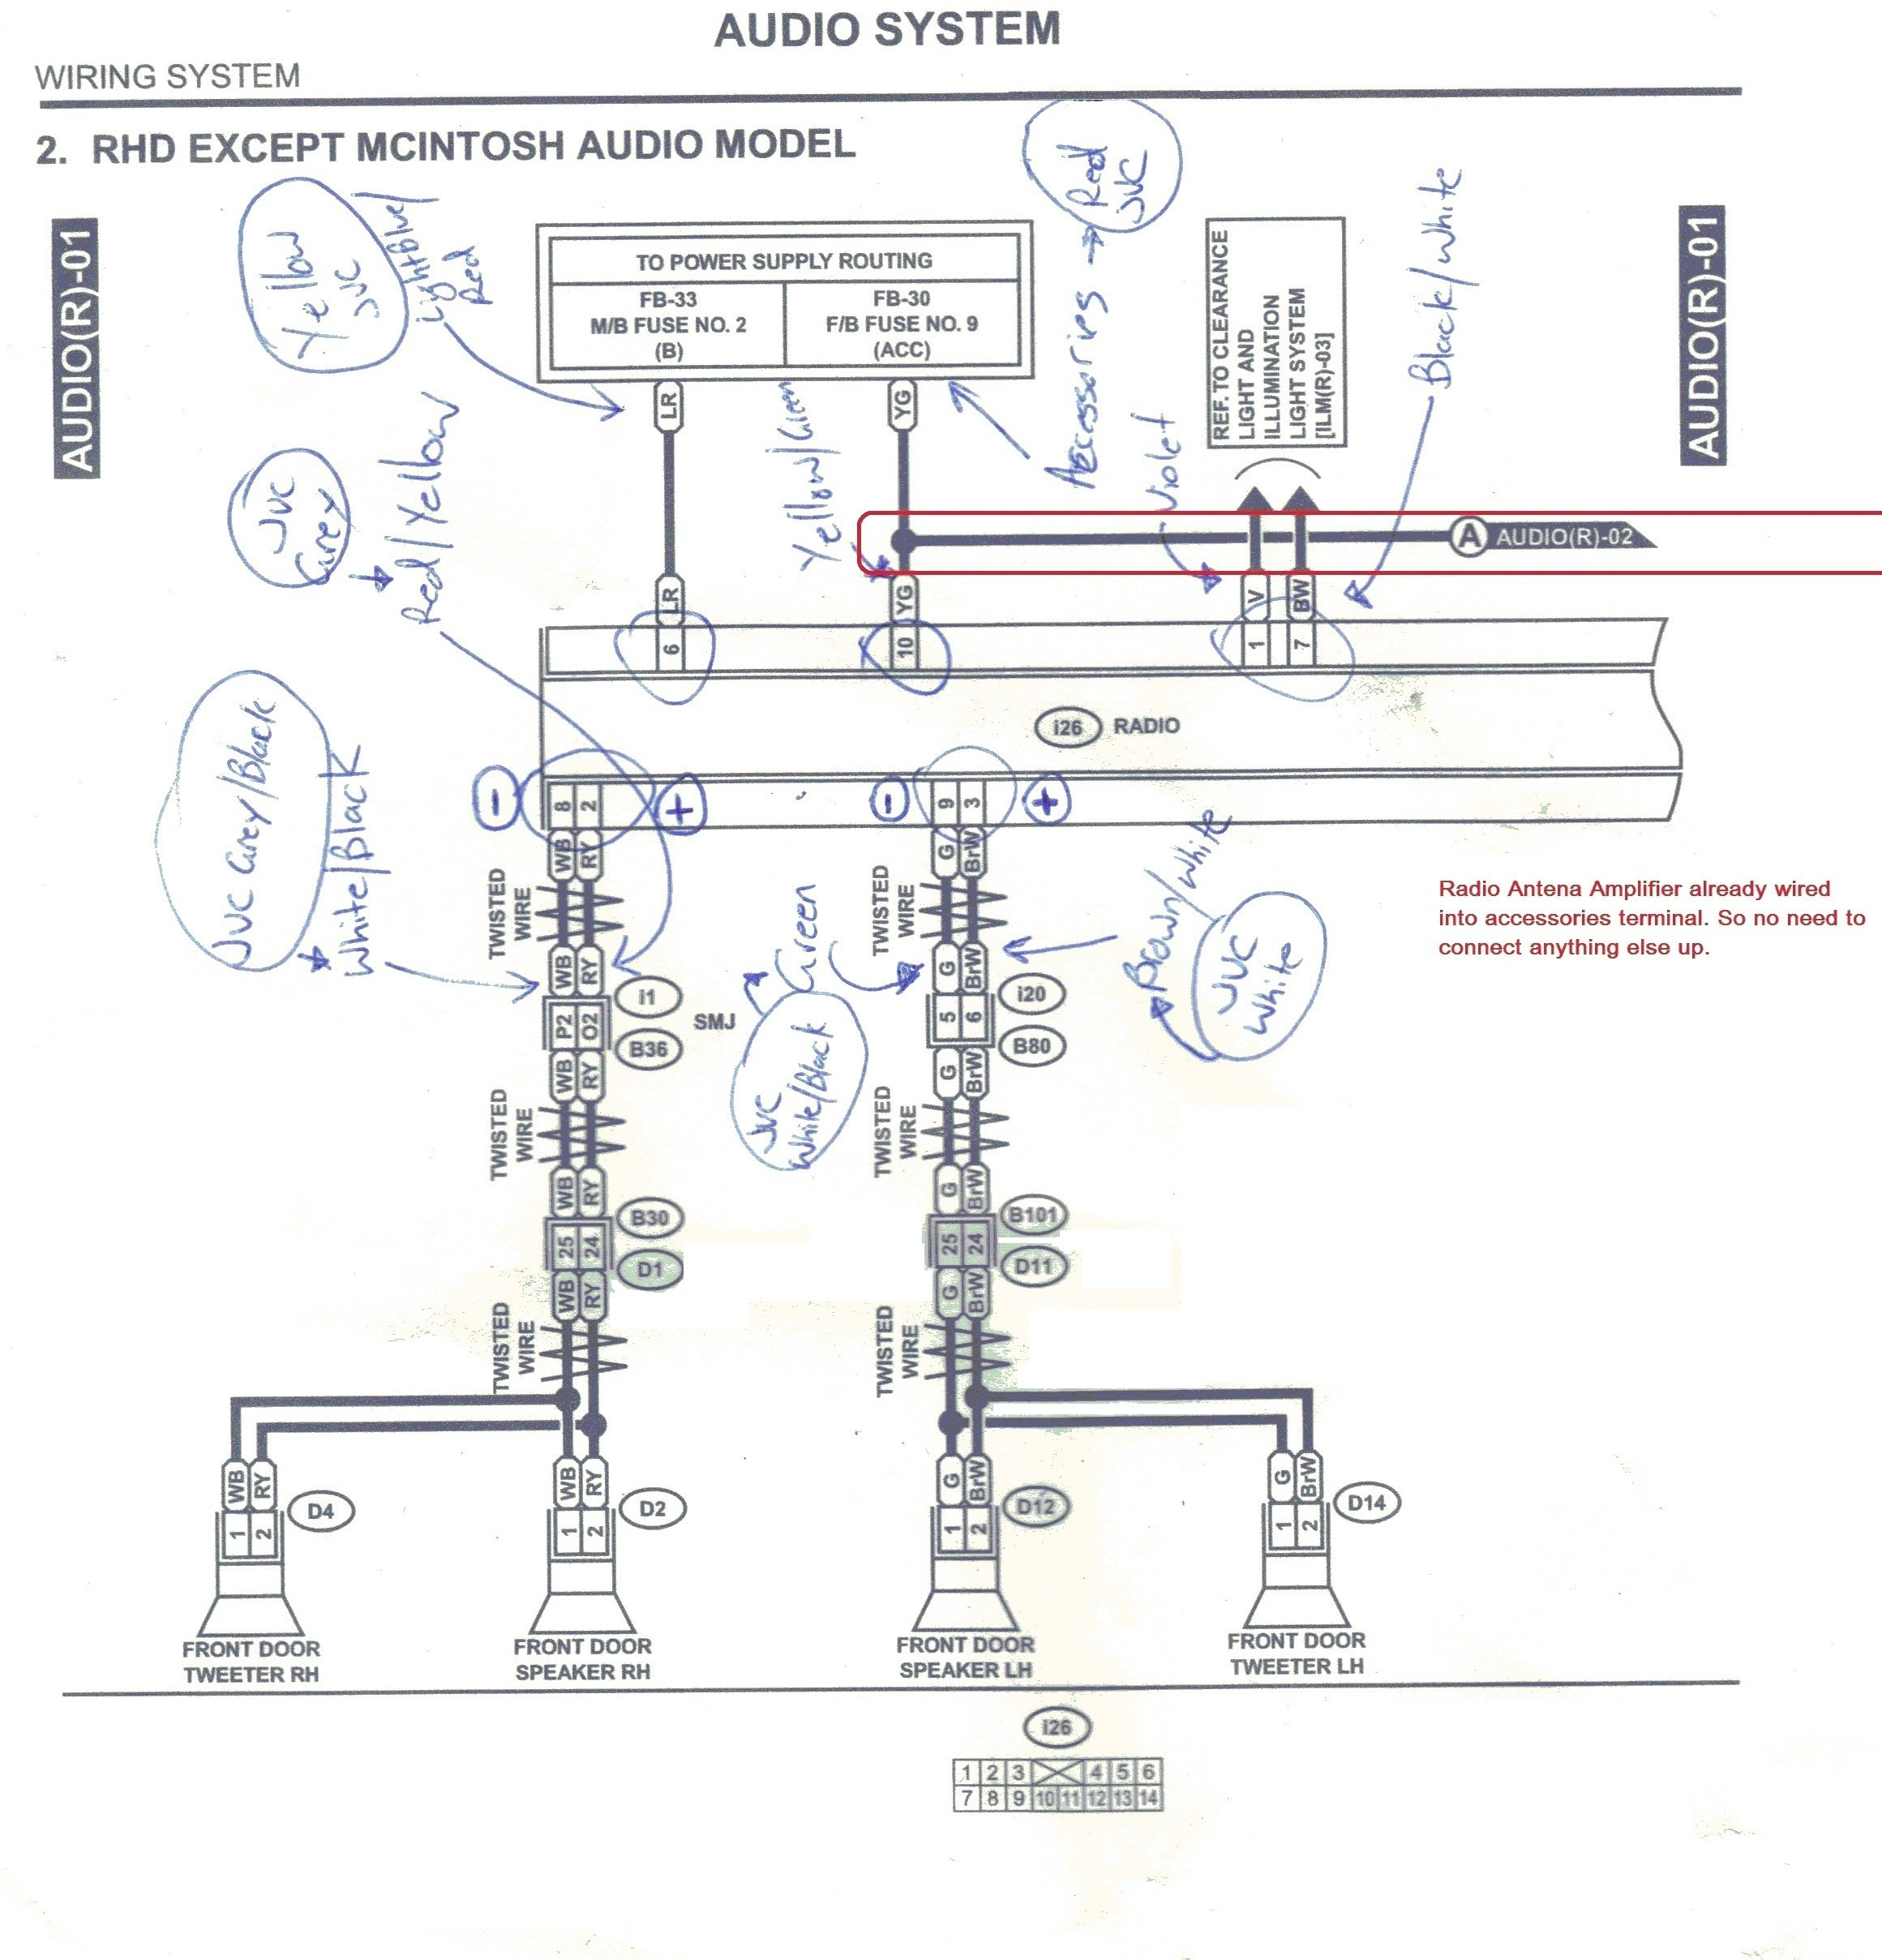 2004 Subaru forester Engine Diagram 1998 Subaru forester Engine Diagram  Http Wwwjustanswer Subaru Of 2004 Subaru